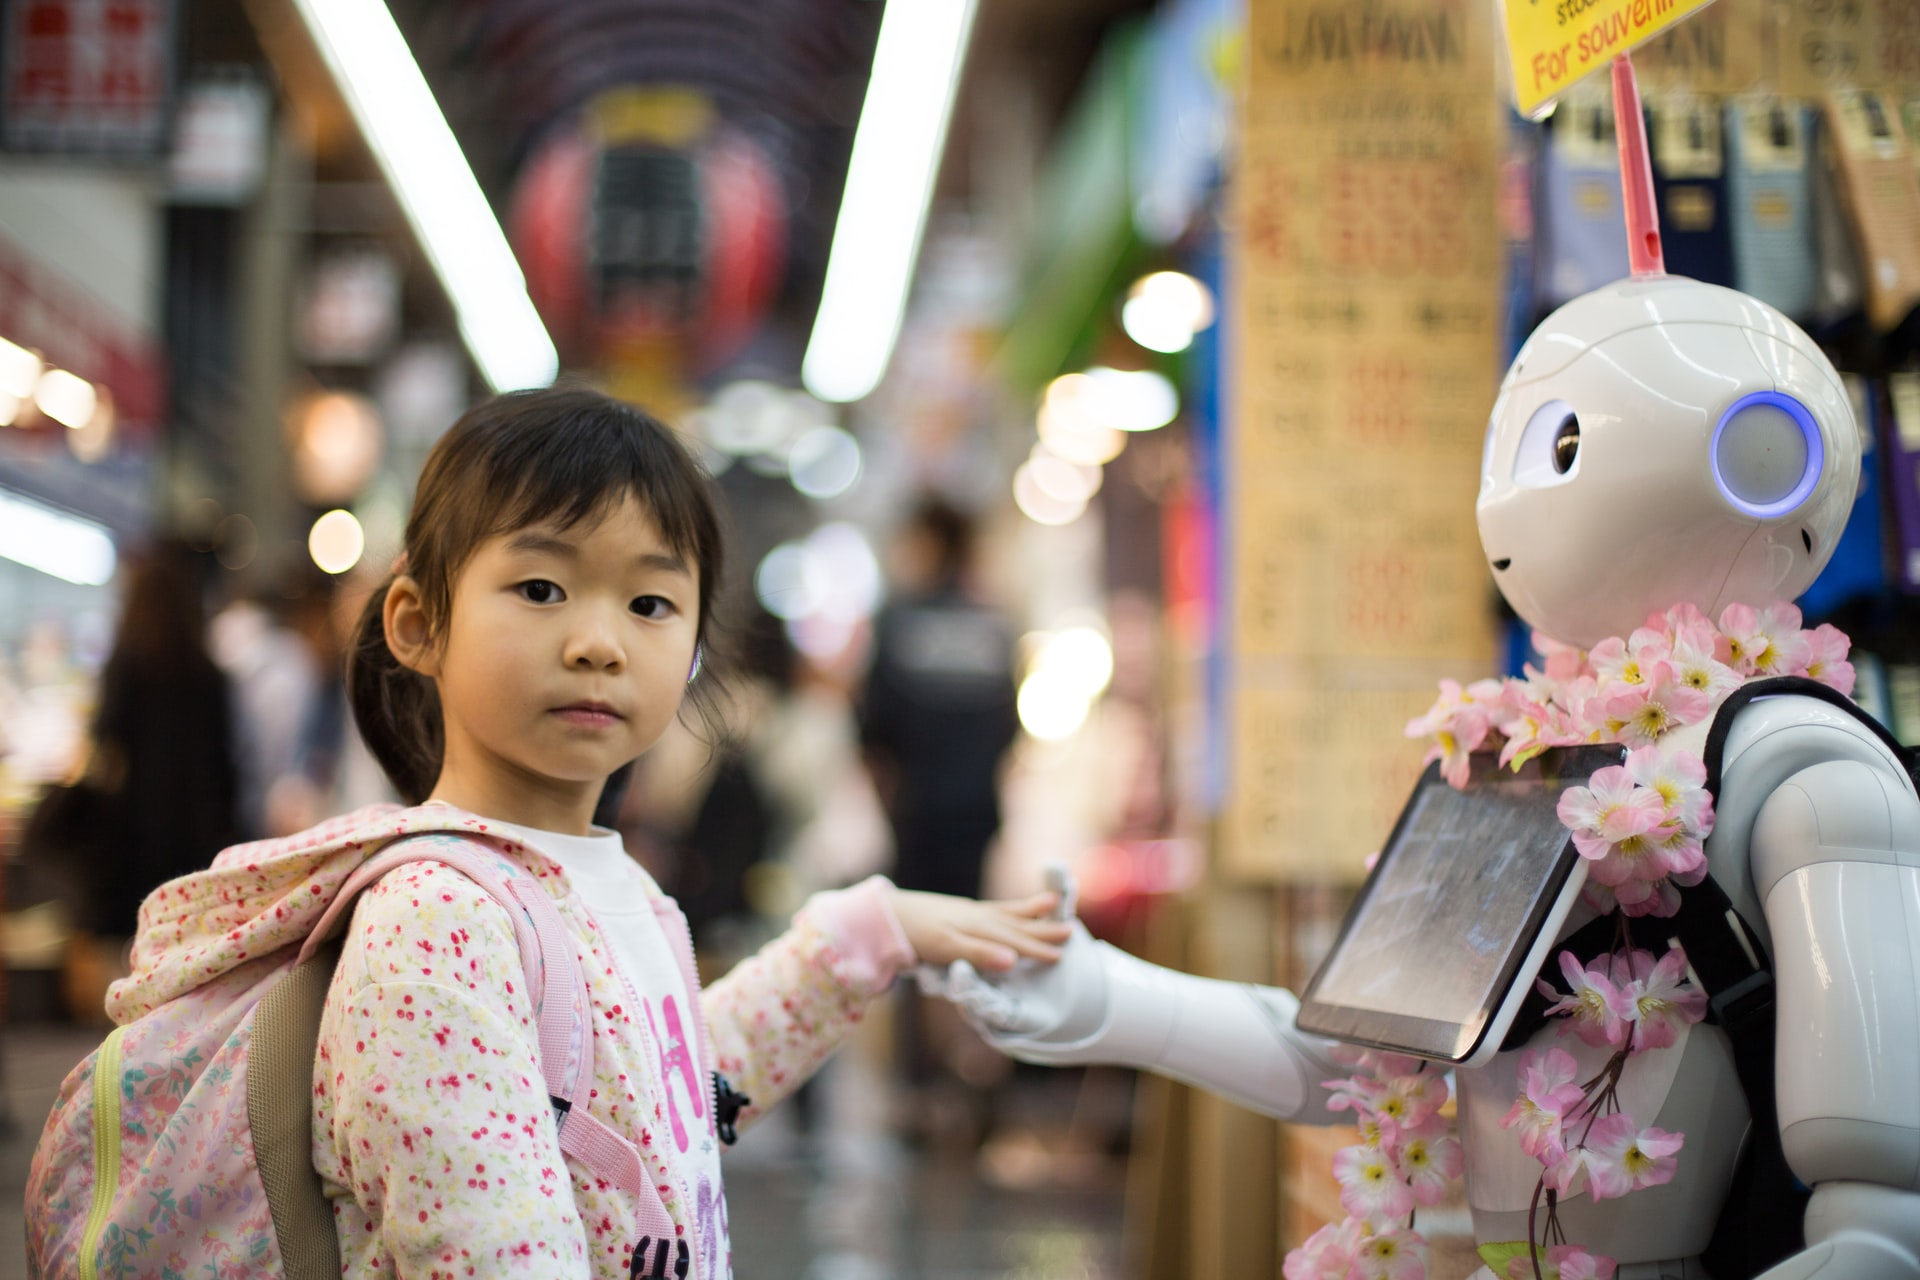 A girl interacts with a white robot.